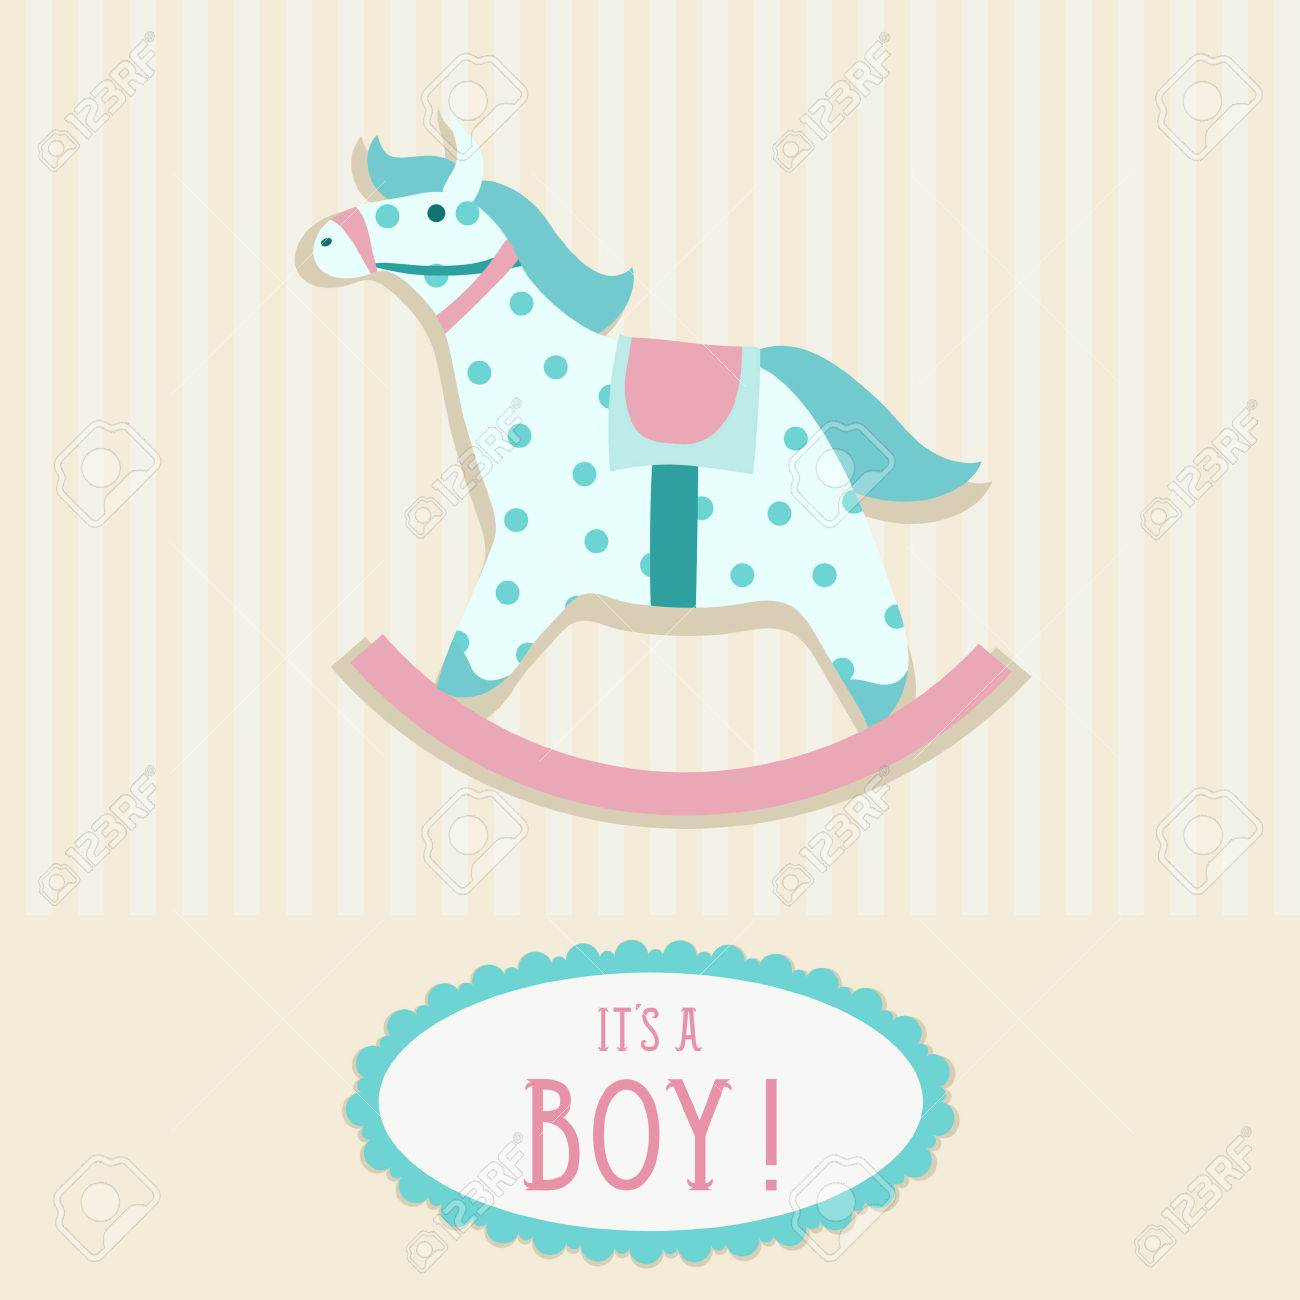 Baby Shower Invitation Card Template With Rocking Horse Royalty Free ...